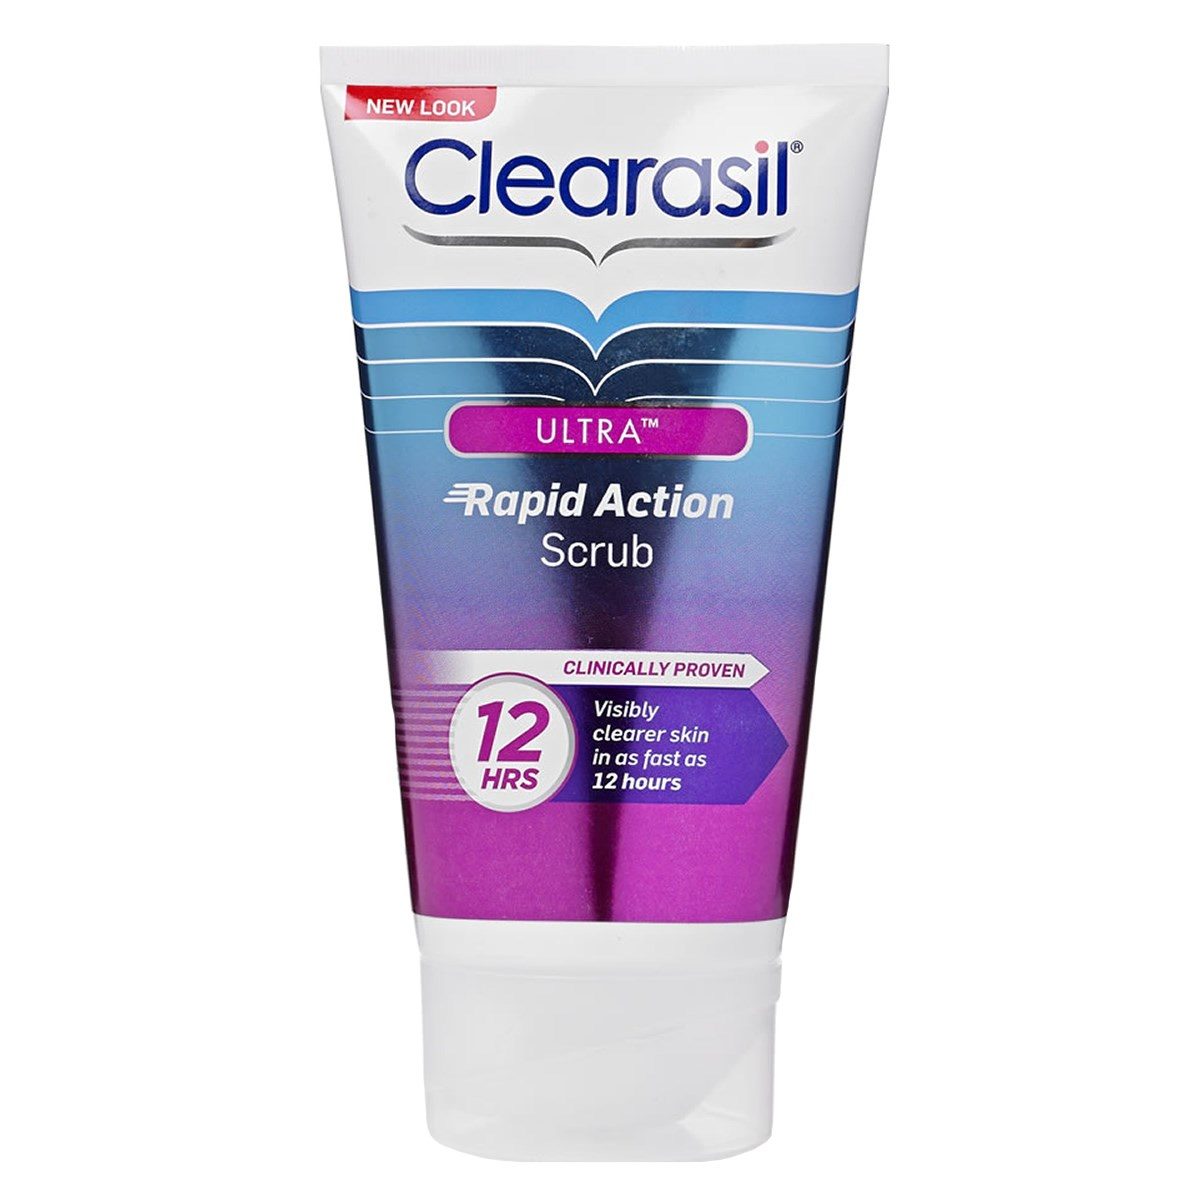 Clearasil Ultra Rapid Action Scrub